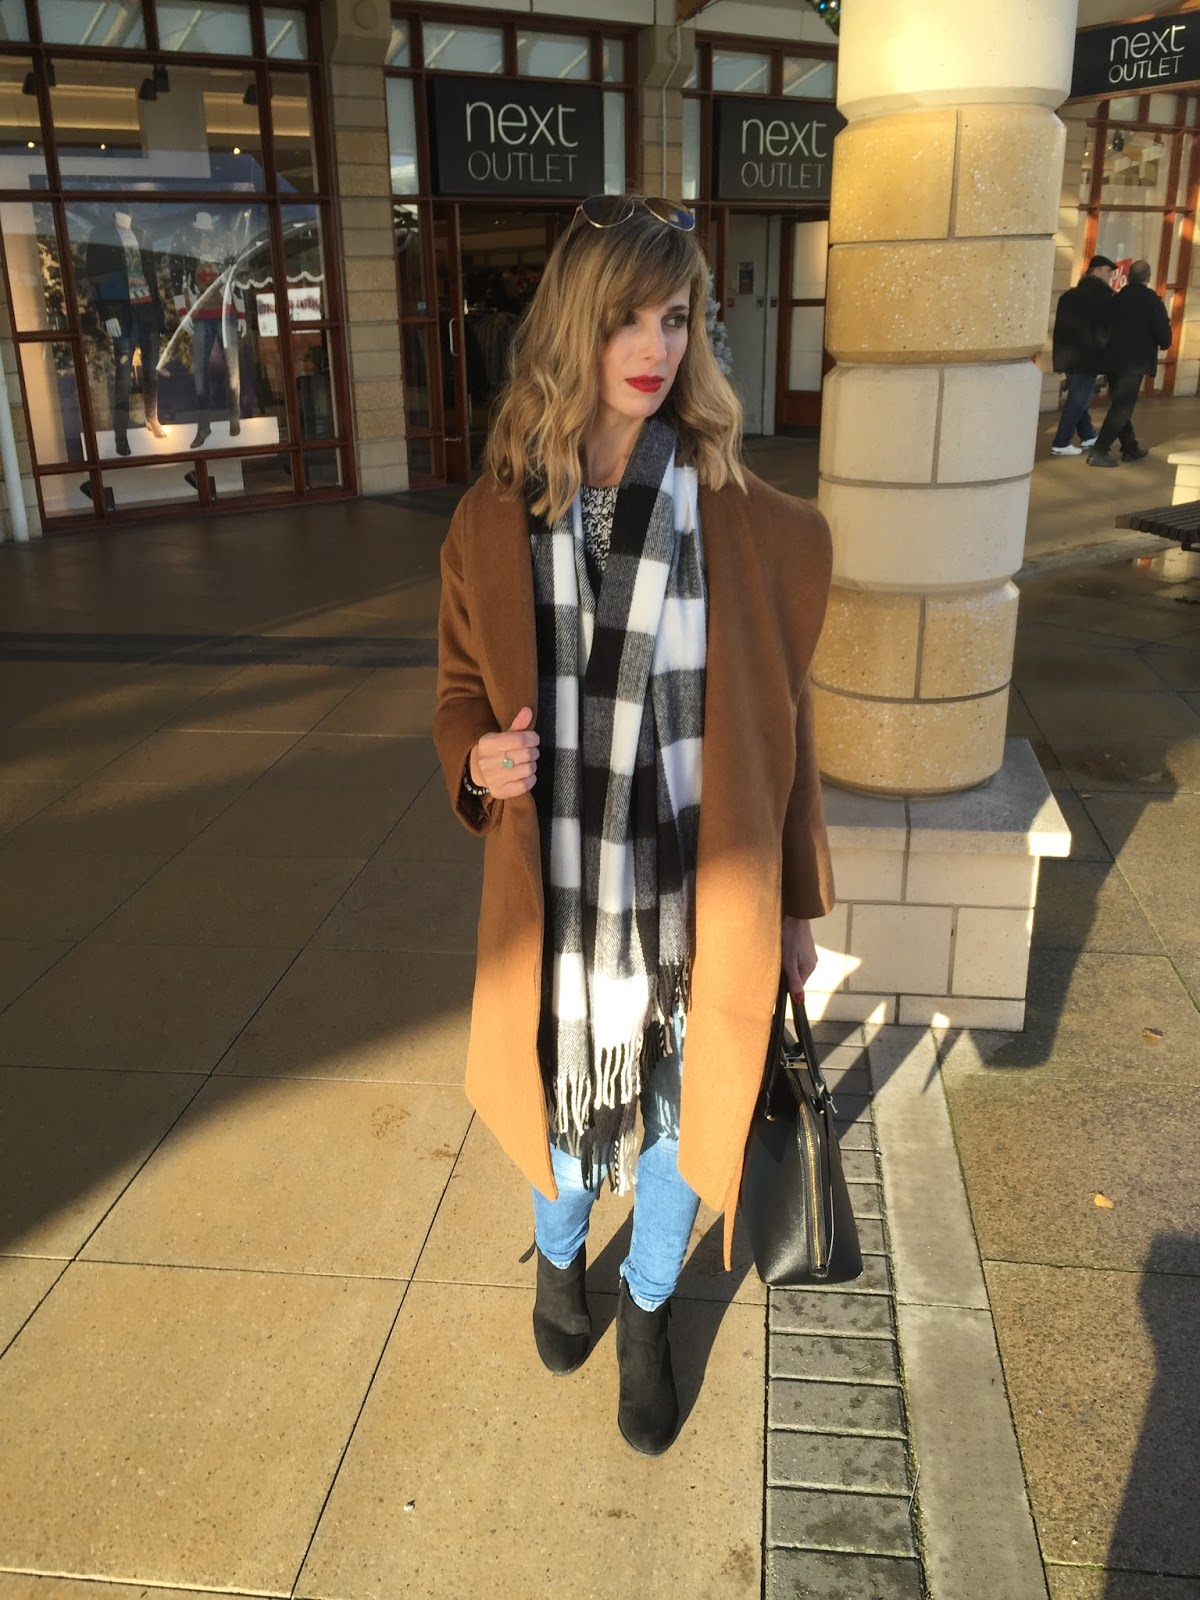 Winter #OOTD featuring H&M coat and Shein scarf